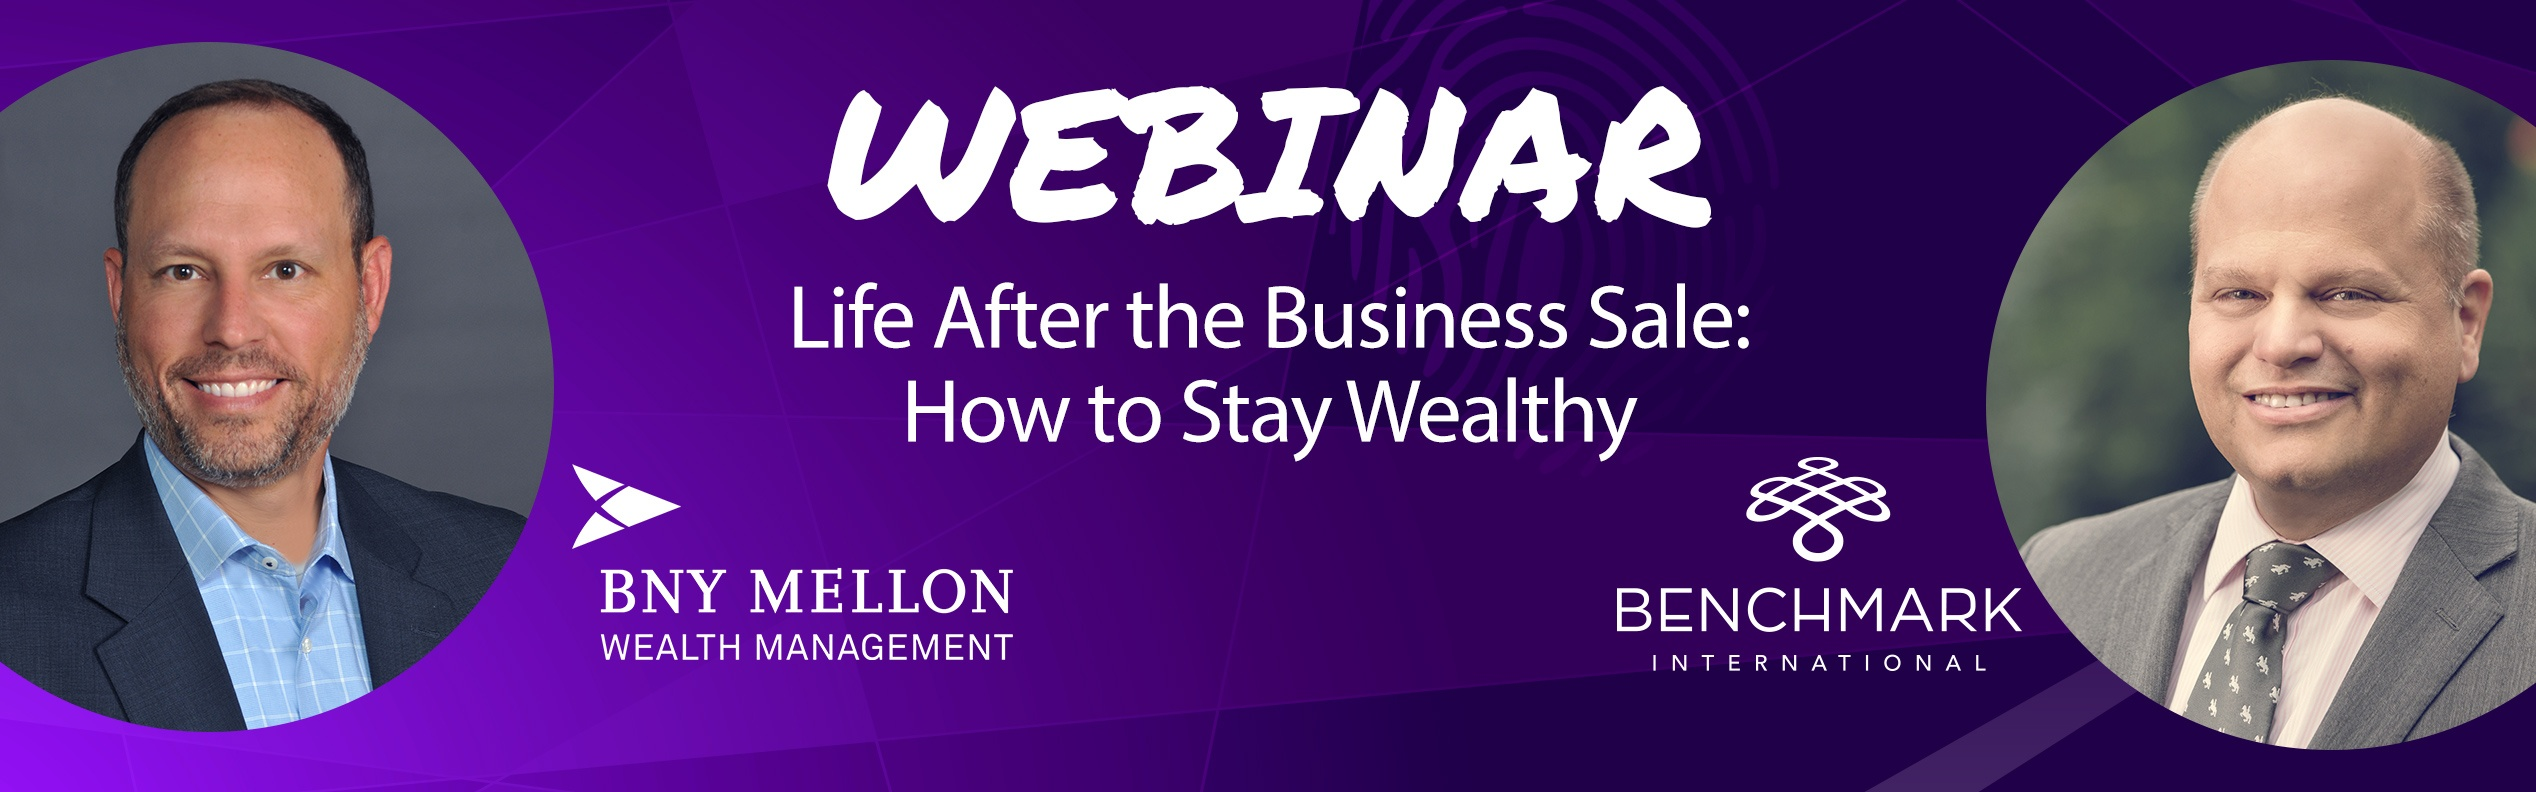 Webinar: Life After the Business Sale: How to Stay Wealthy